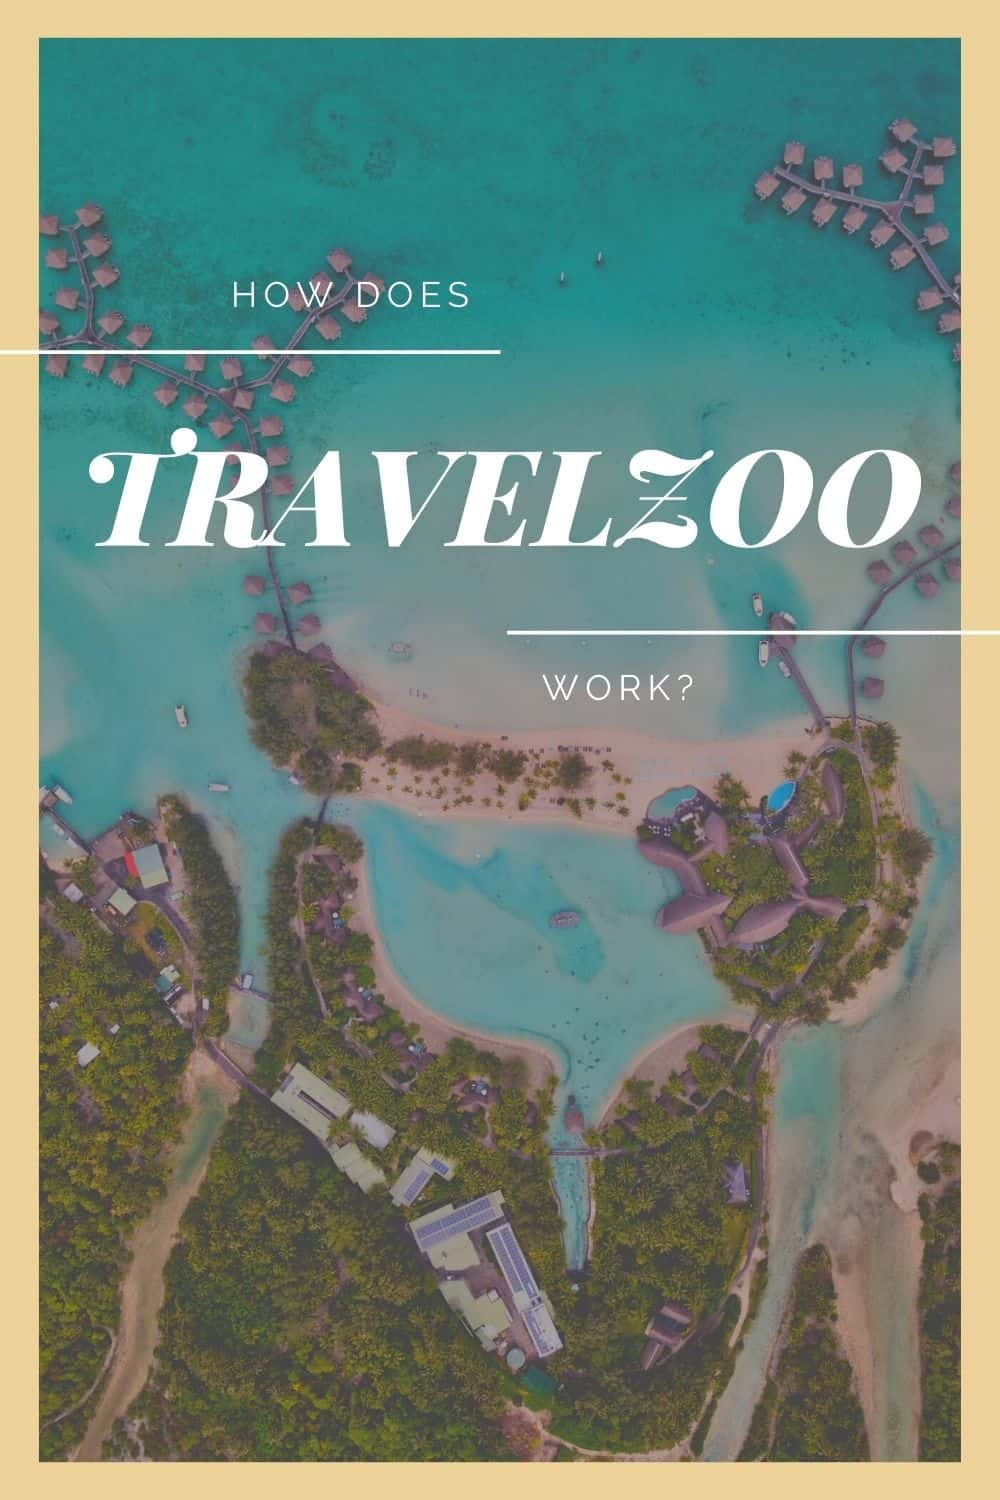 How Does Travelzoo Work?